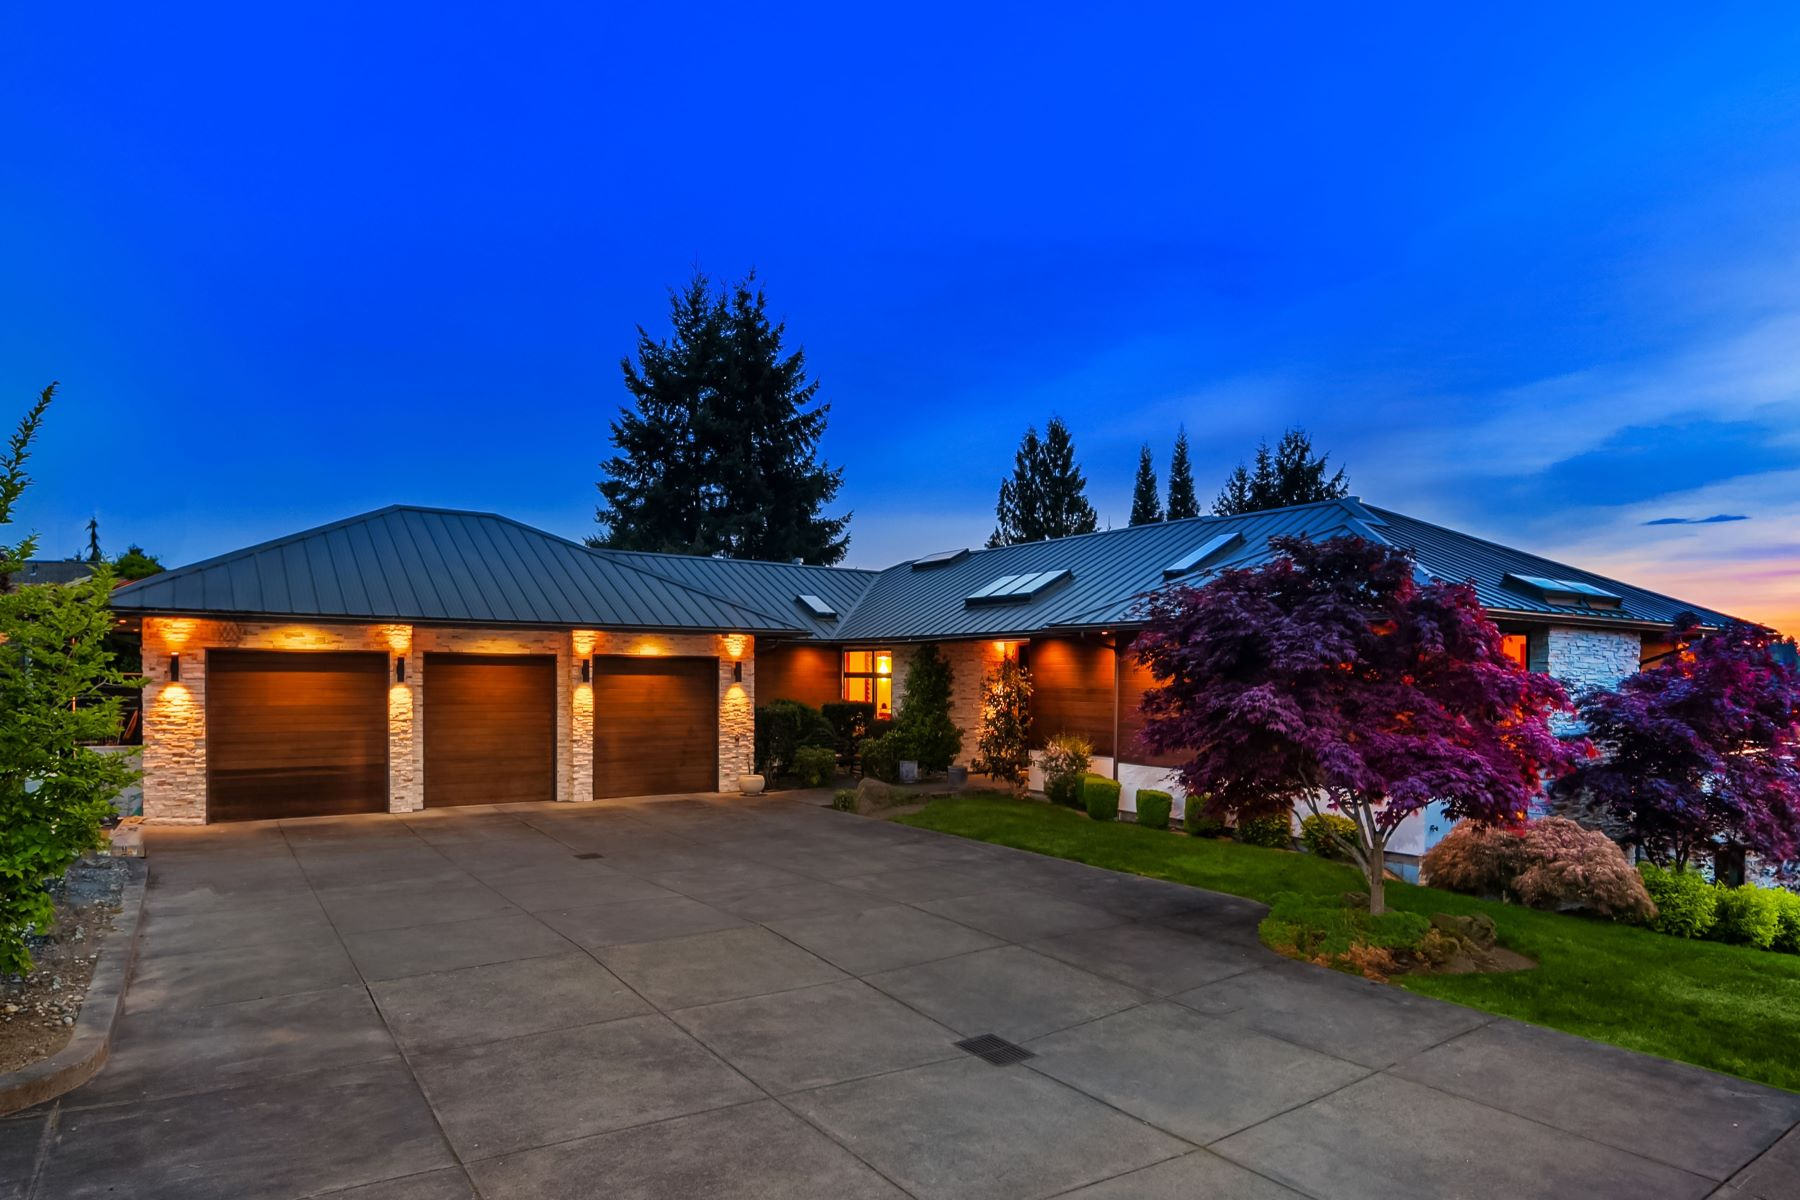 Single Family Homes for Sale at 8631 Northeast 19th Place, Clyde Hill, WA 98004 8631 NE 19th Place Clyde Hill, Washington 98004 United States